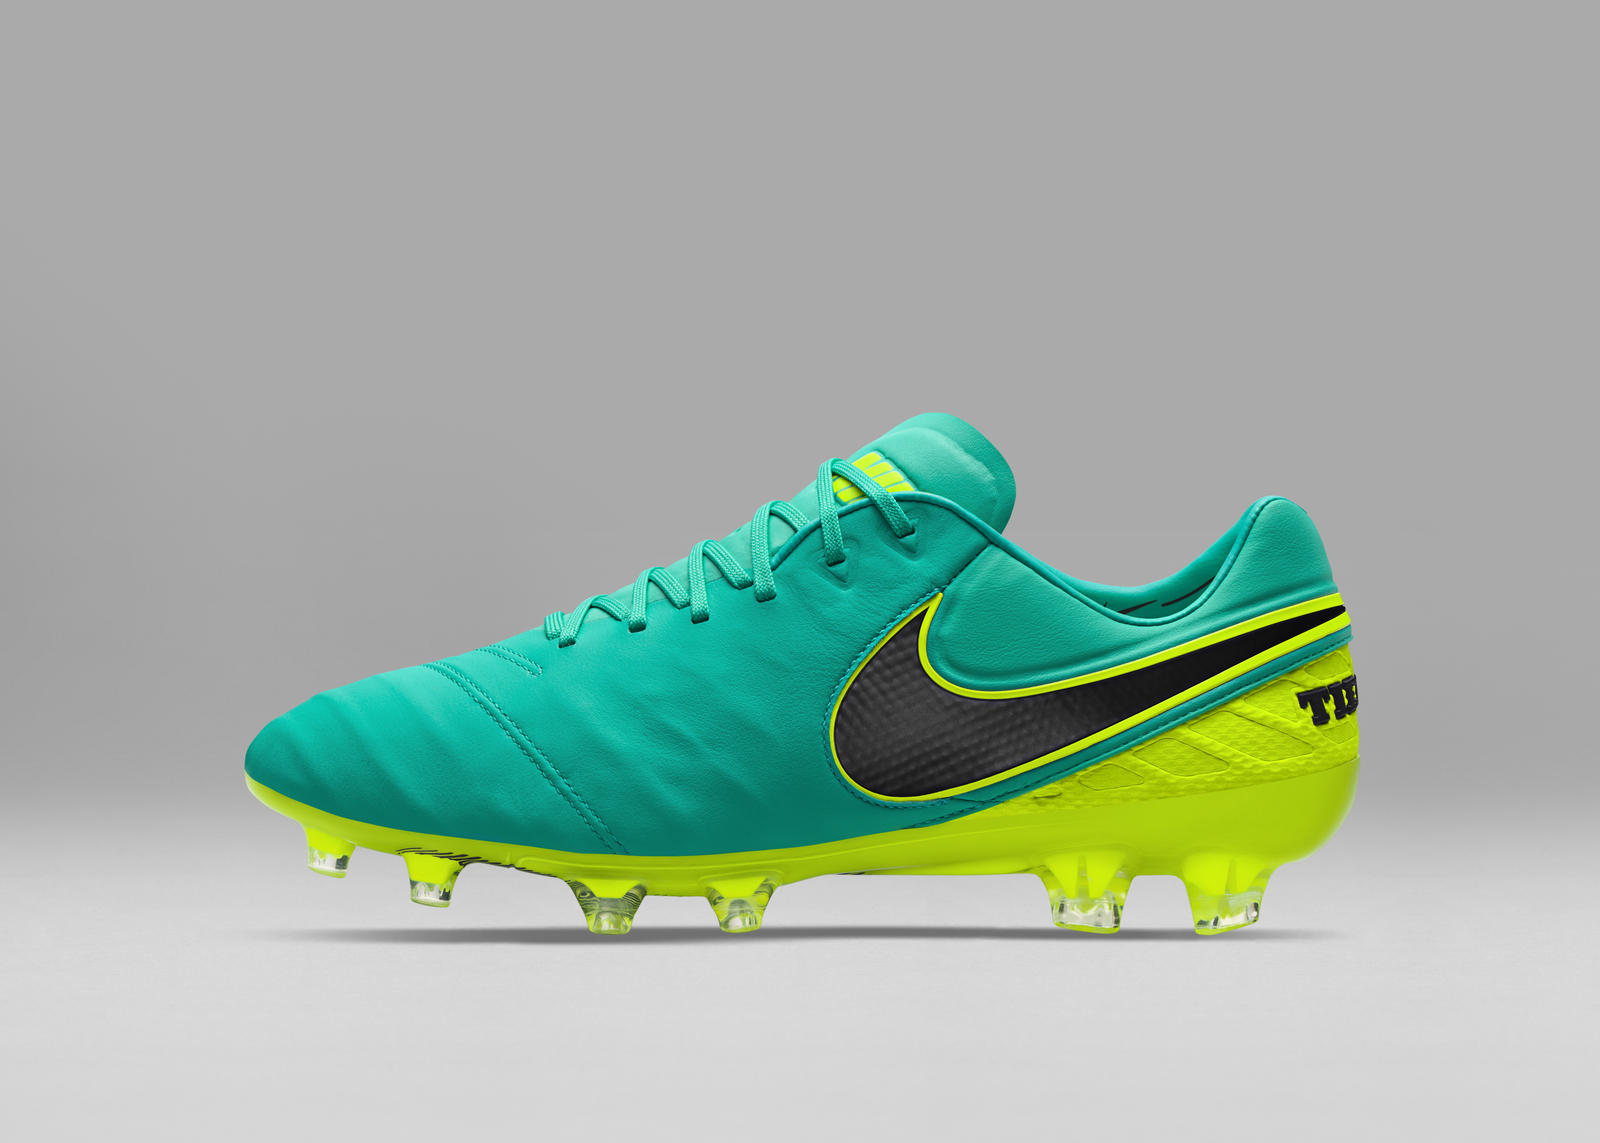 FA16_FB_Spark_Brilliance_Tiempo_Legend_VI__H